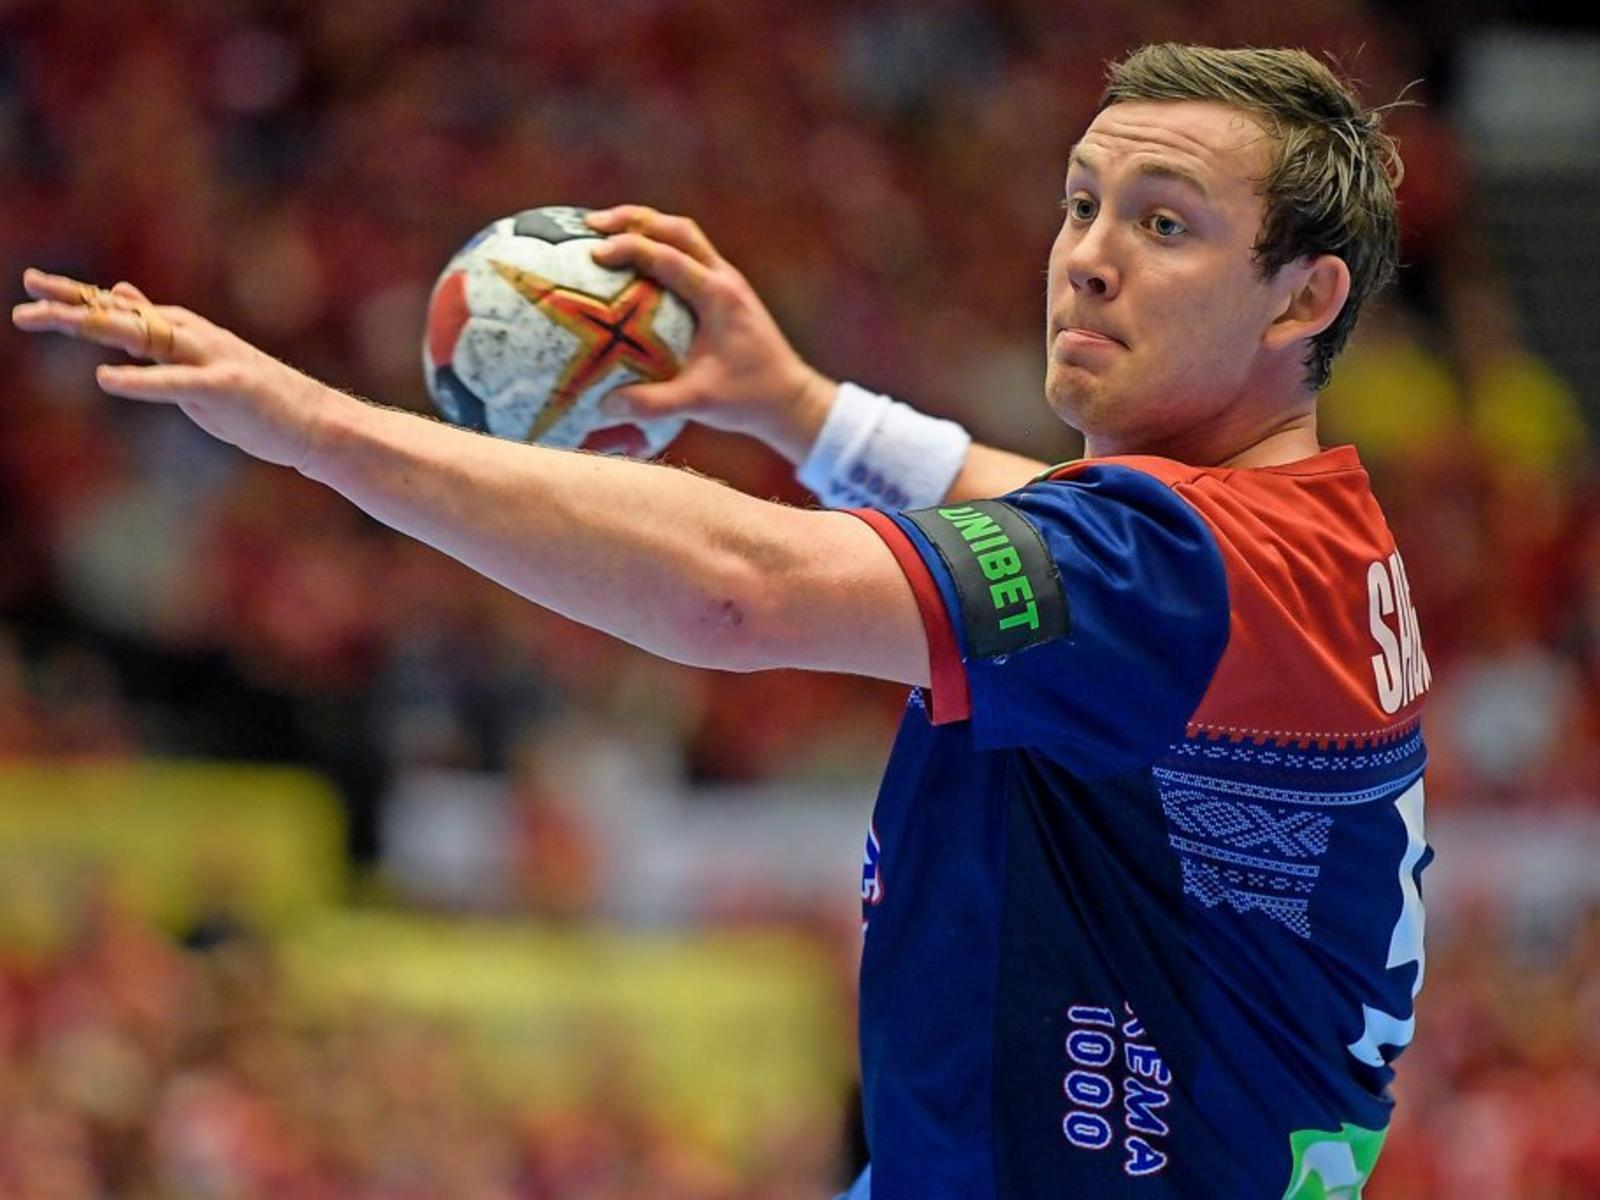 thw kiel holt norwegens superstar sagosen